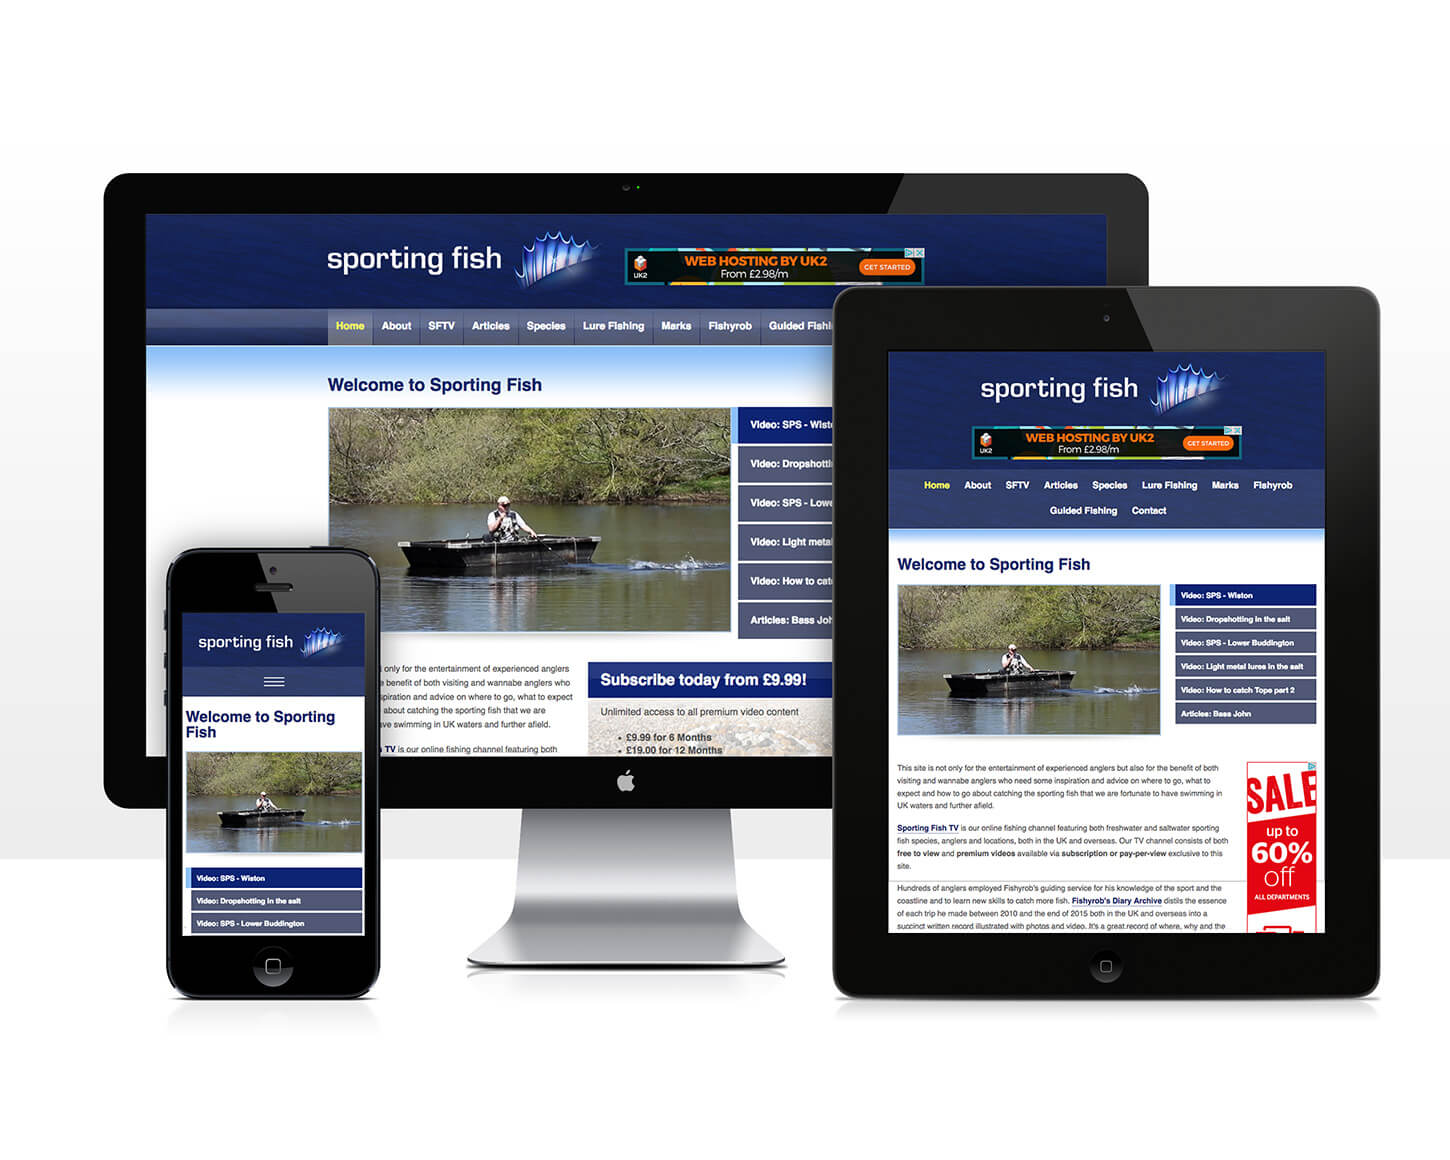 Sporting Fish website